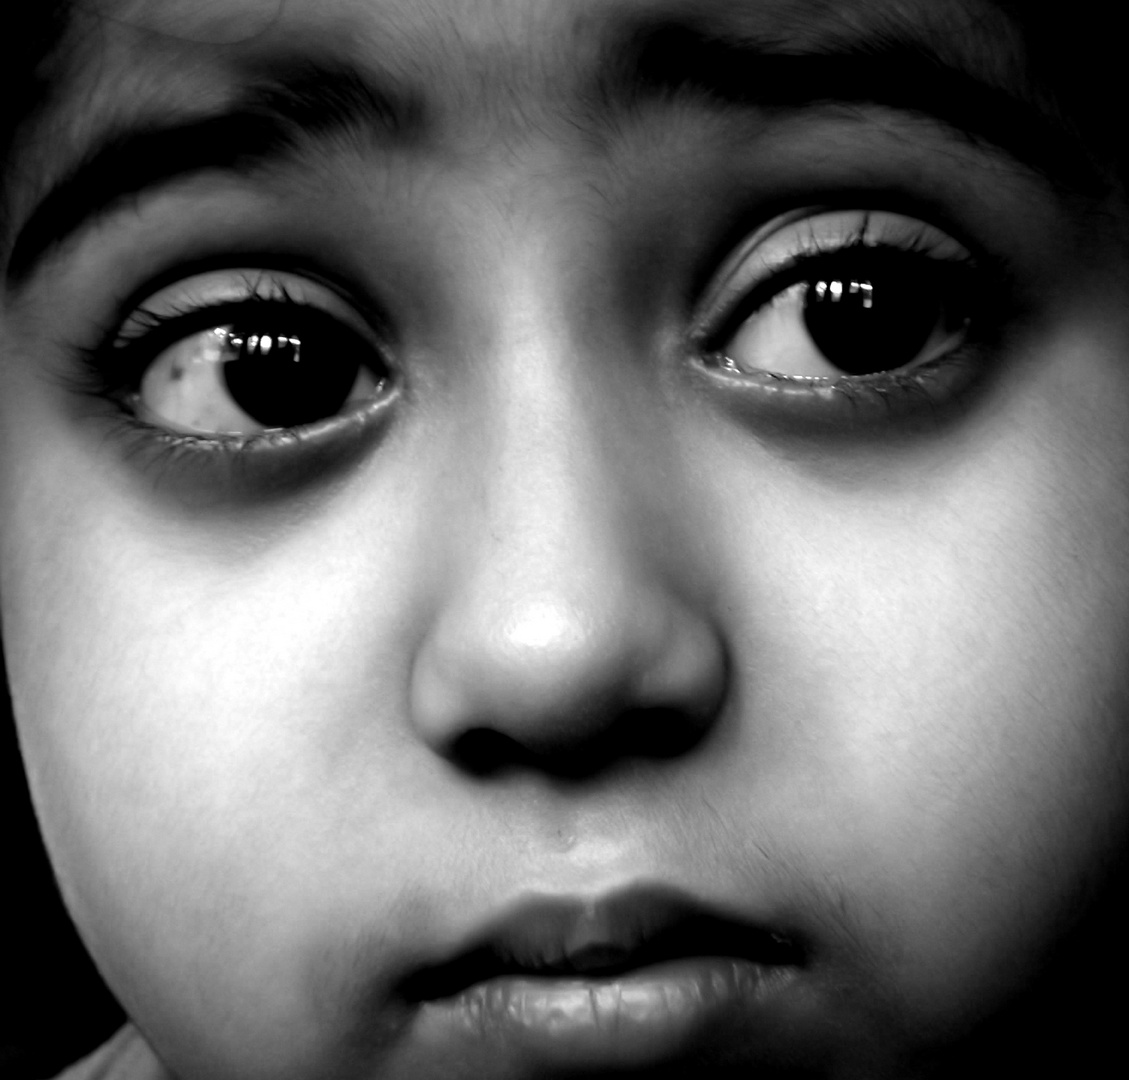 The silent expression...